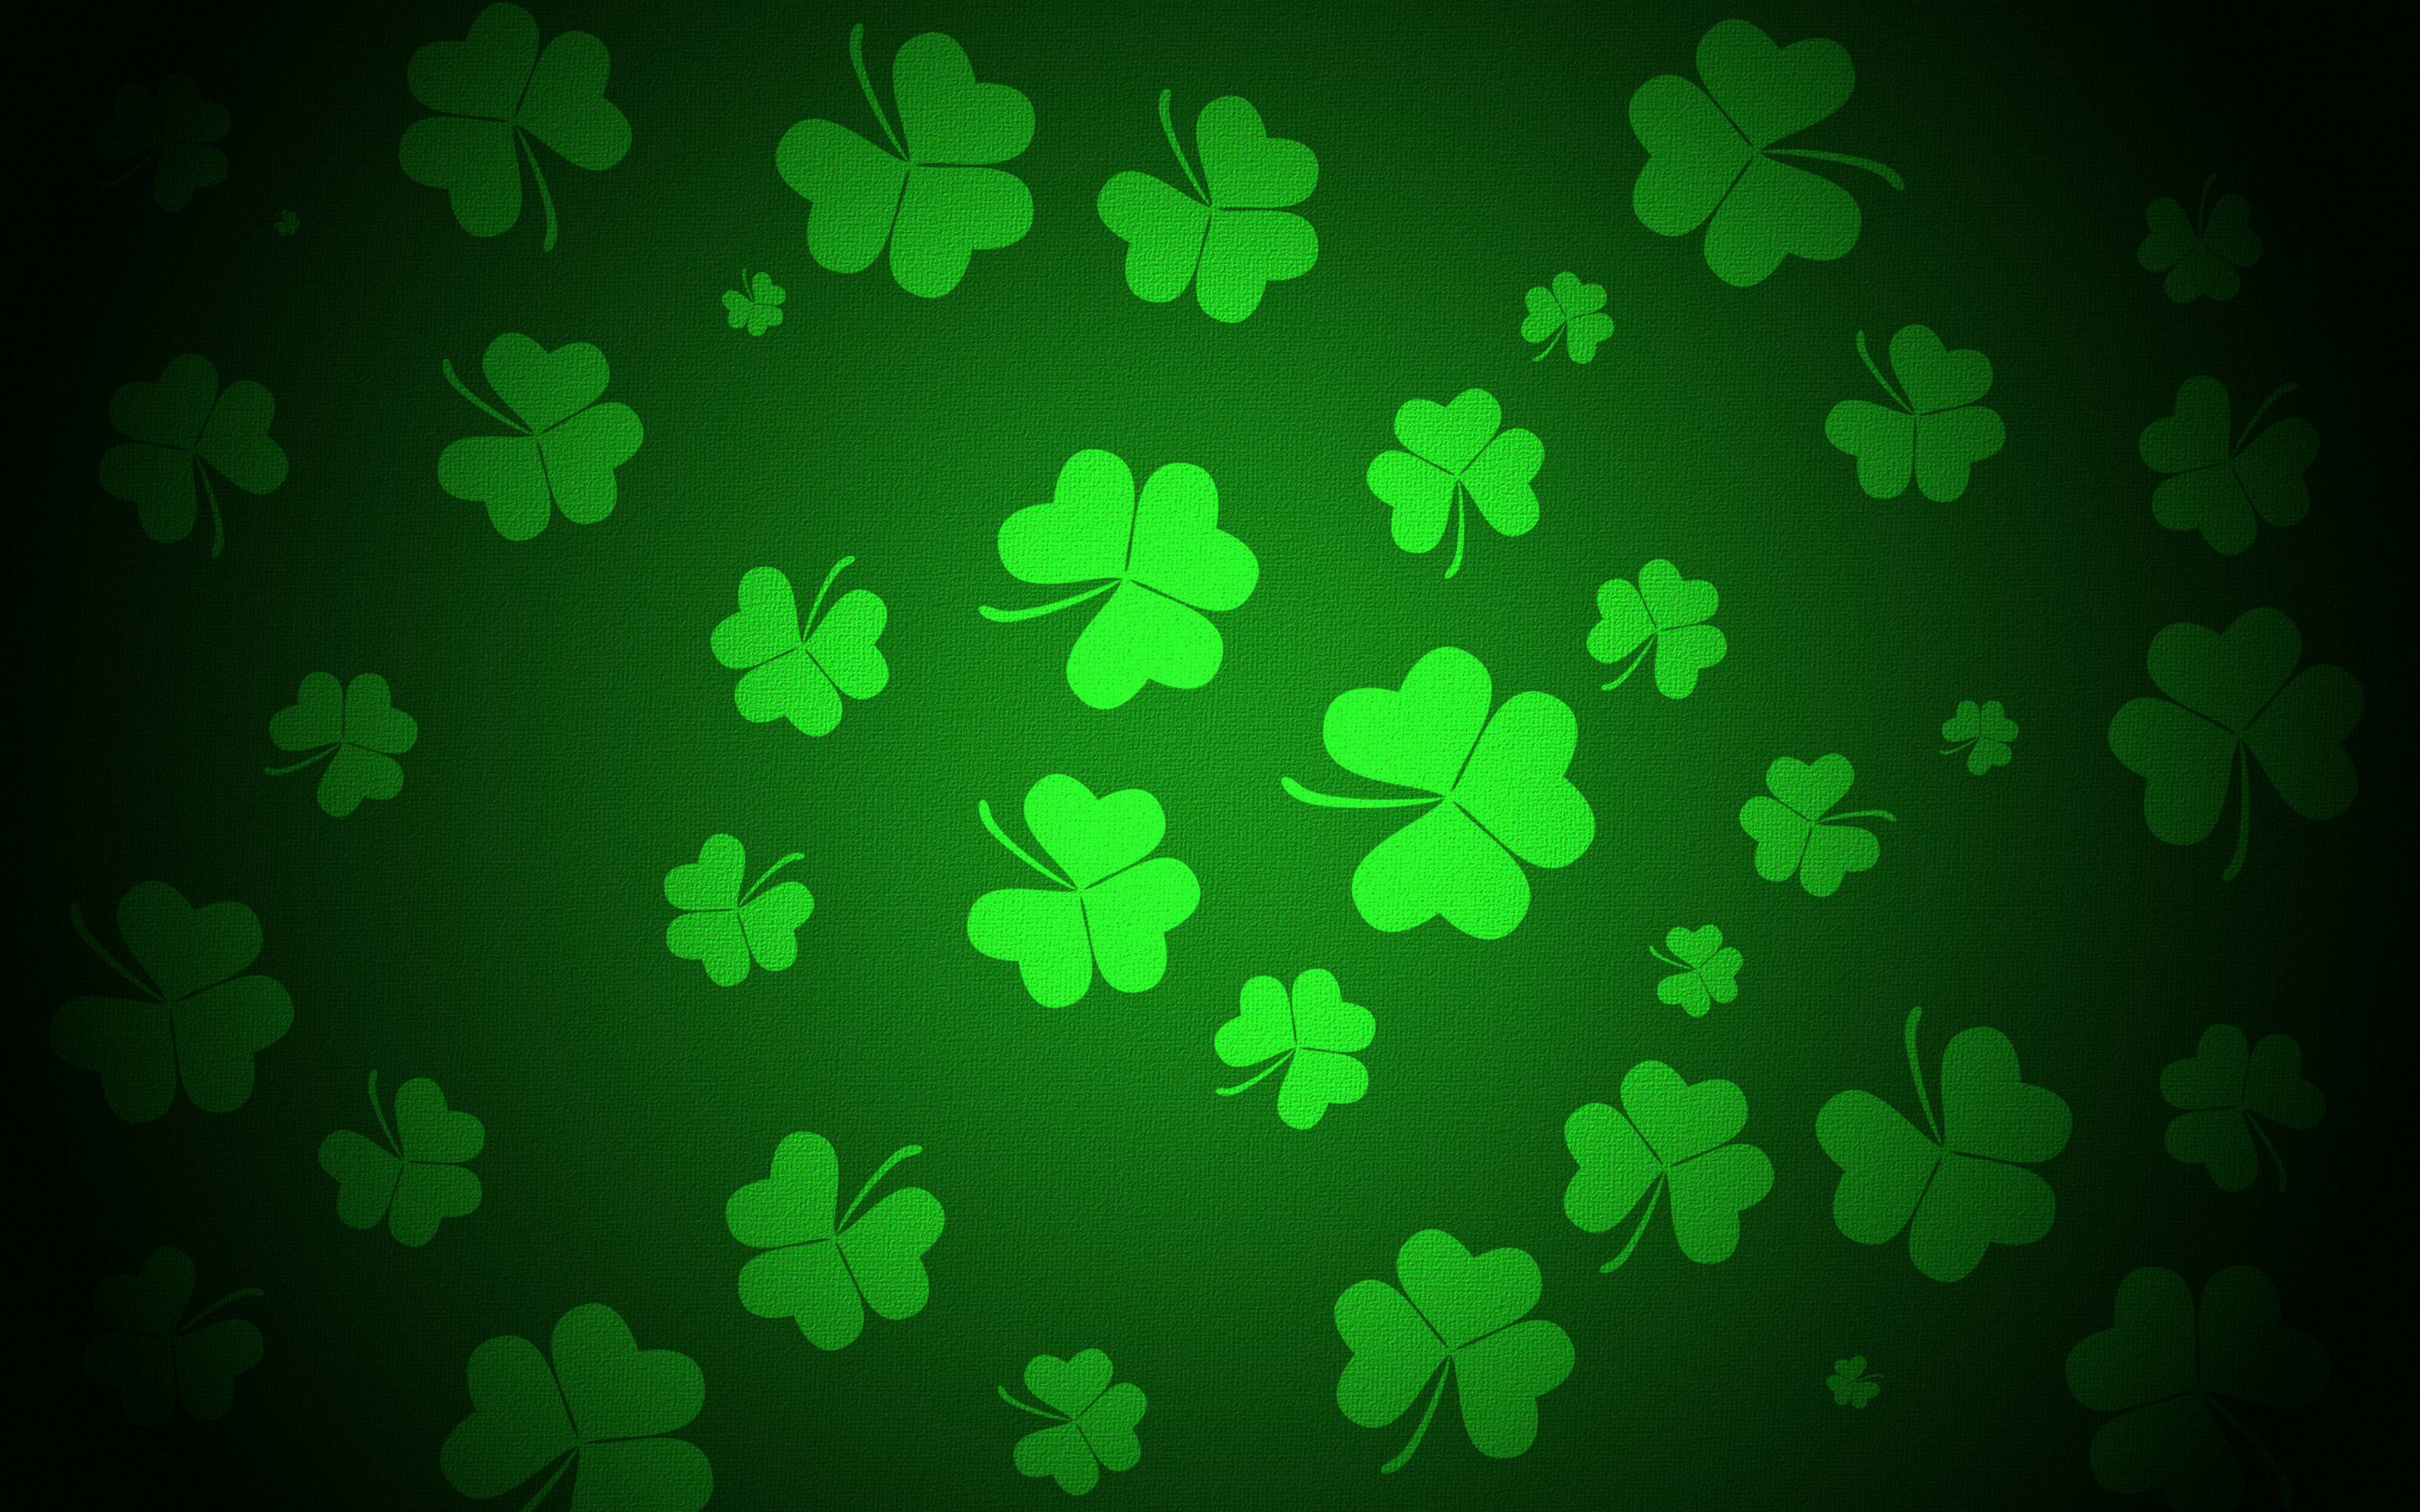 Four Leaf Clover Wallpapers 2880x1800